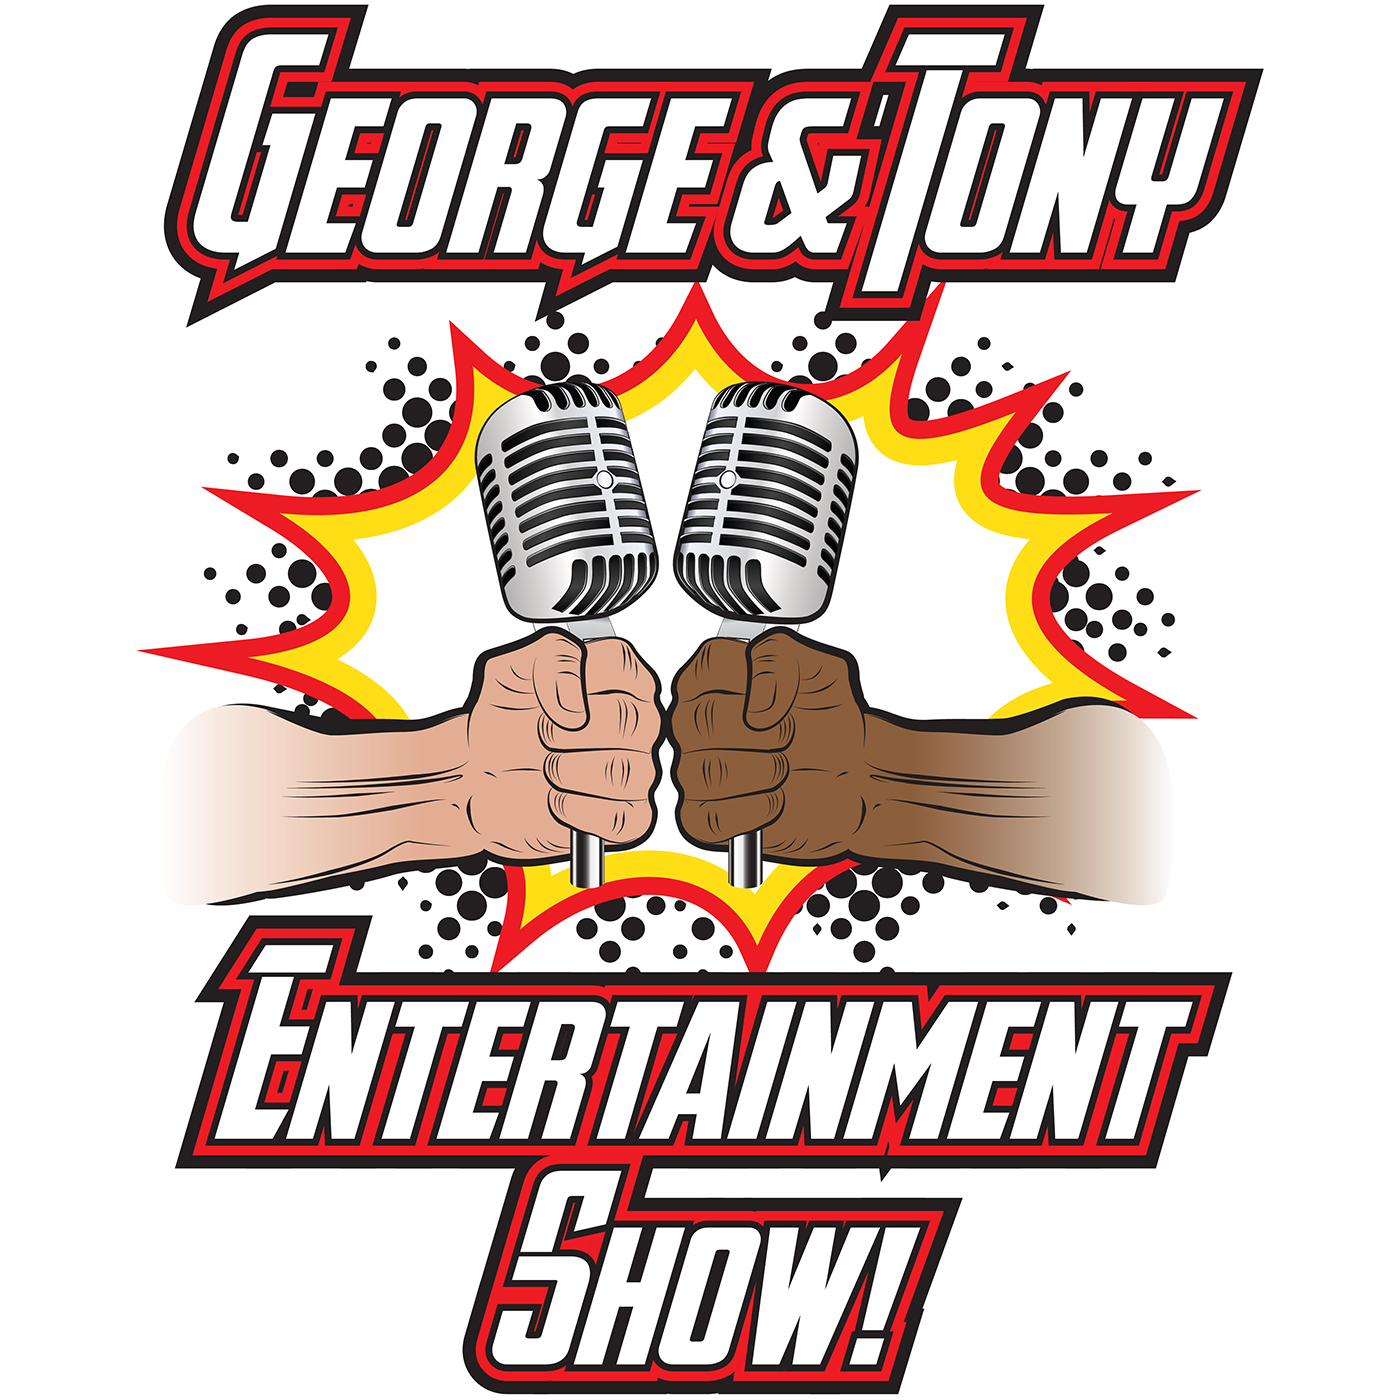 George and Tony Entertainment Show #160